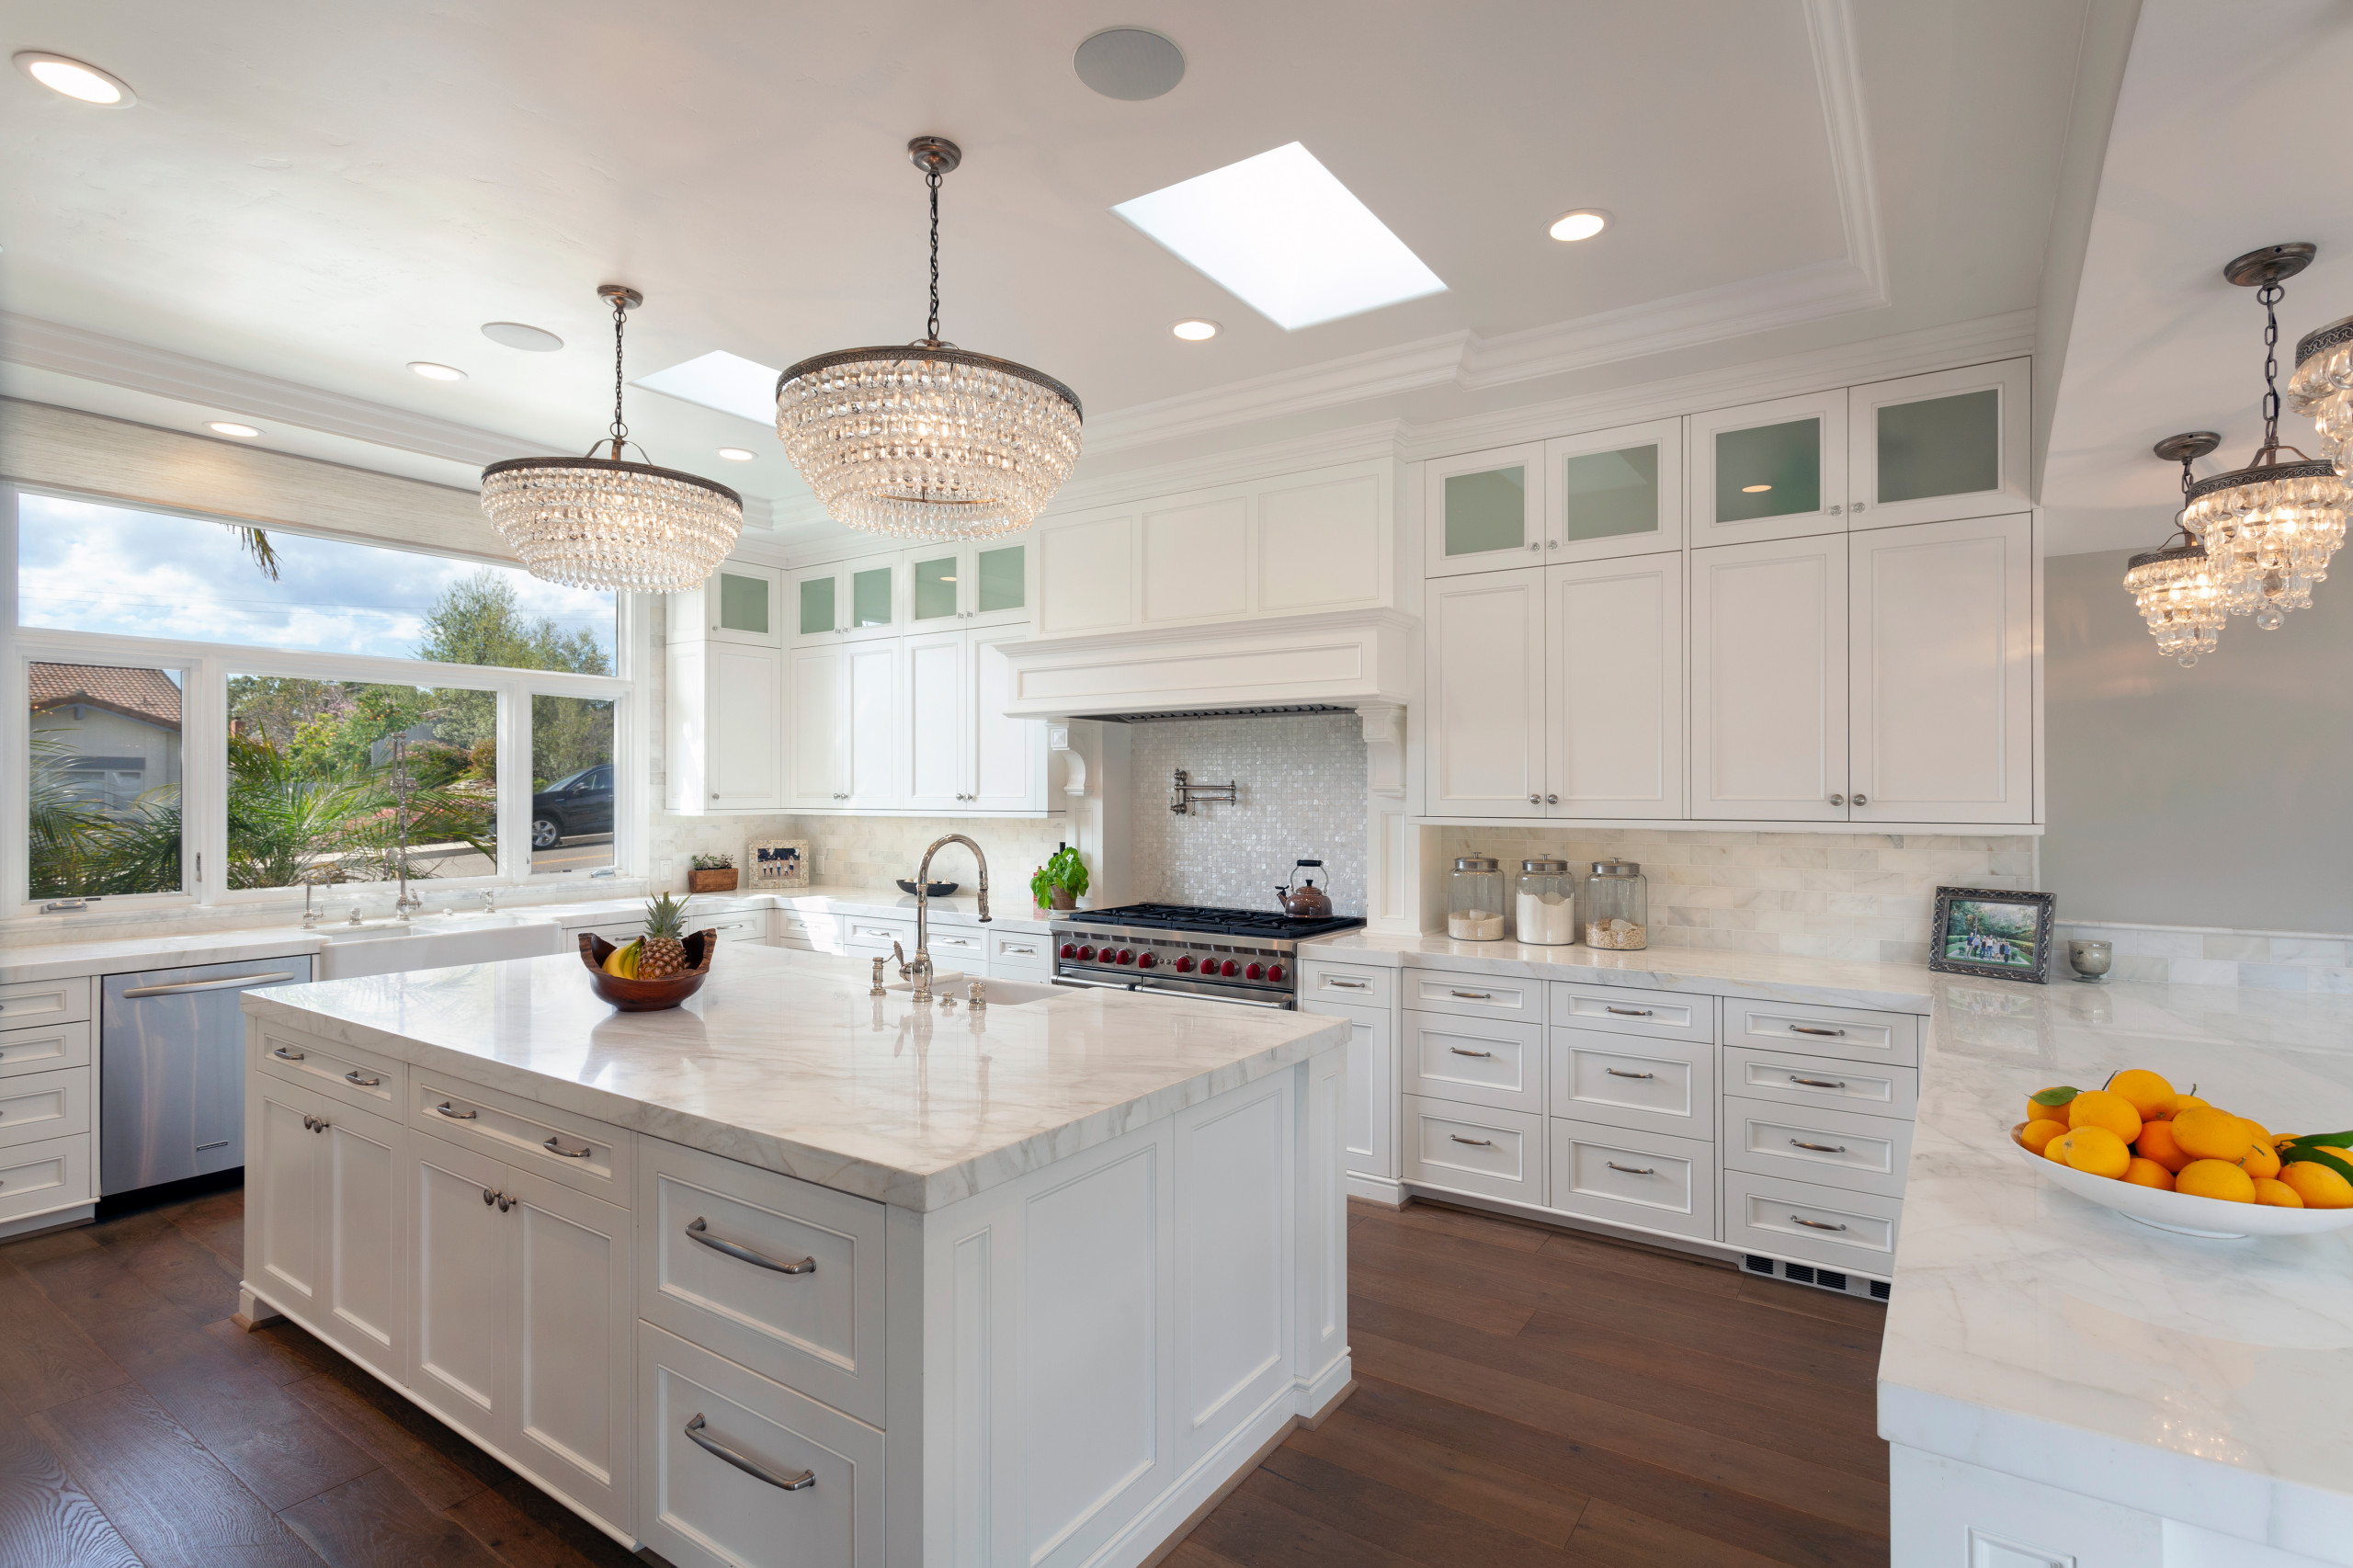 White Kitchen Cabinets With Brown Wood Floors - Kitchen ...